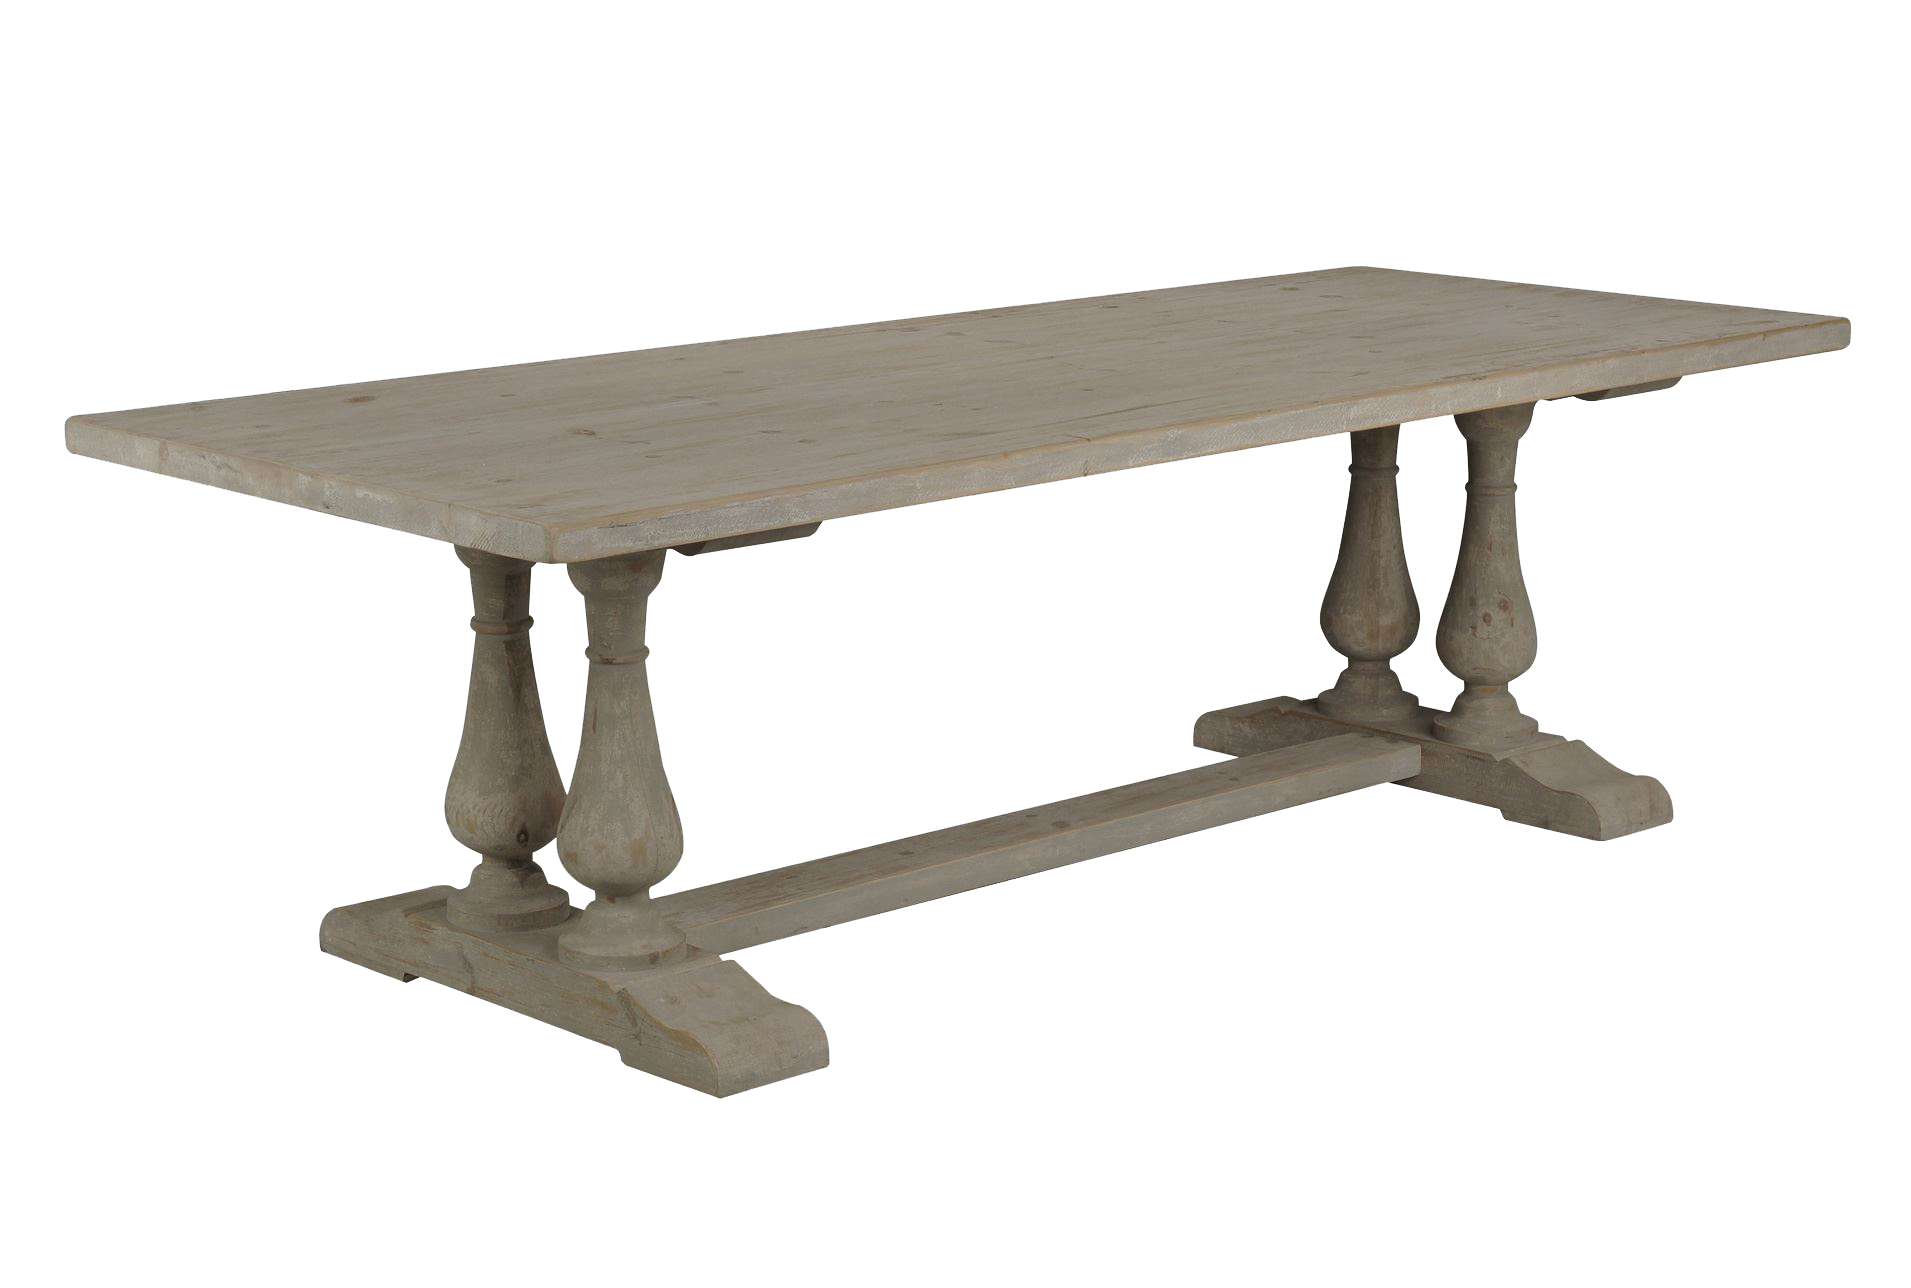 Napa Dining Table Lux Lounge EFR 888 247 4411 : NAPA DINING TABLE NEW from luxloungeefr.com size 1911 x 1288 png 499kB